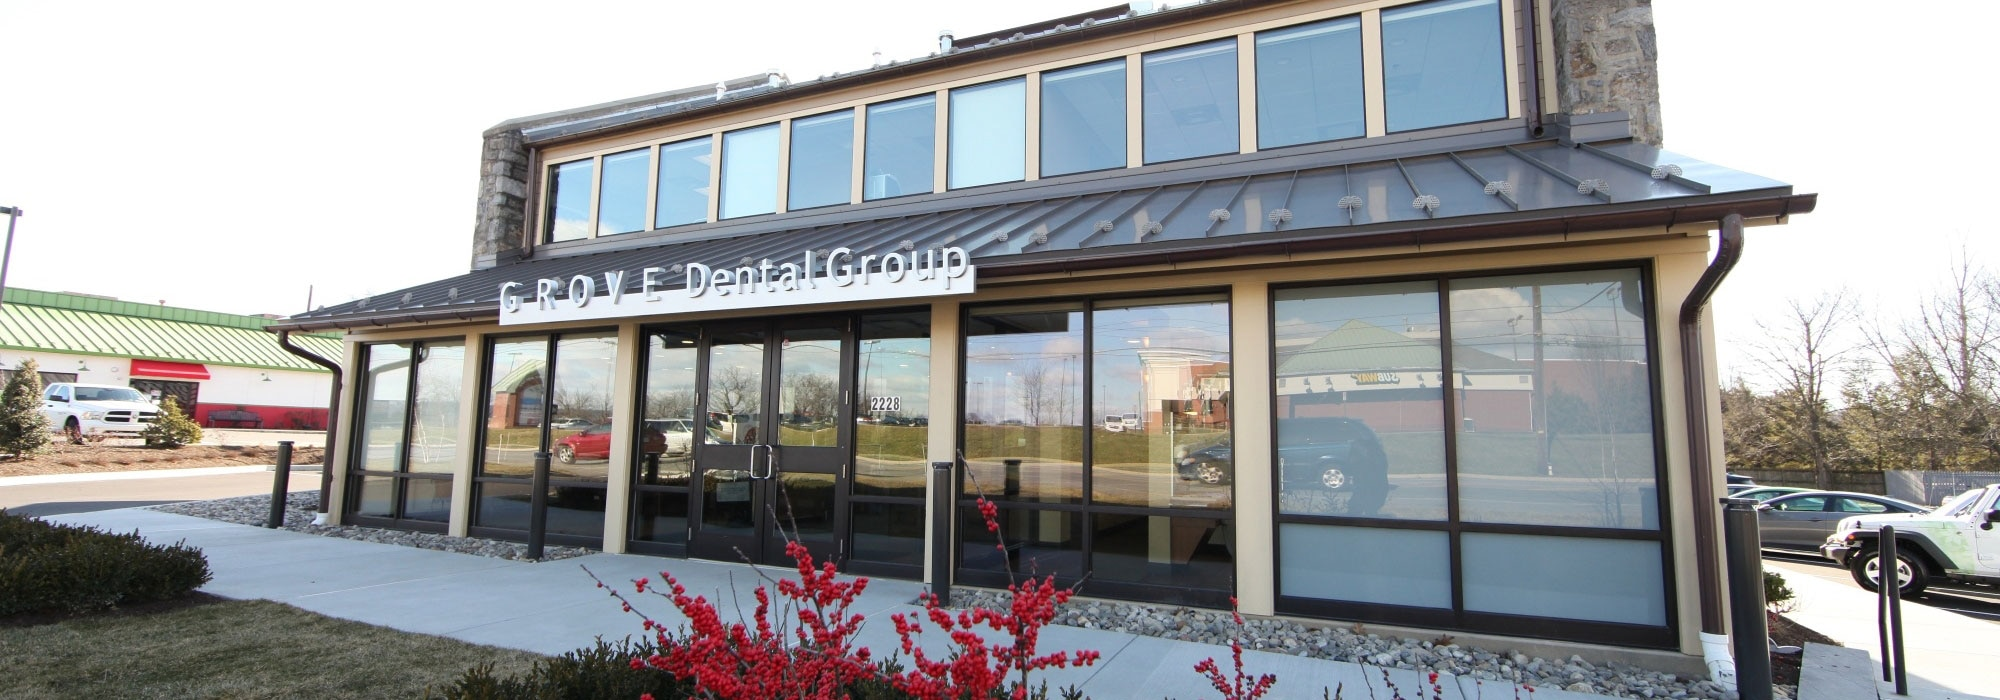 Dr. Jeff Groves Dental Practice Exterior